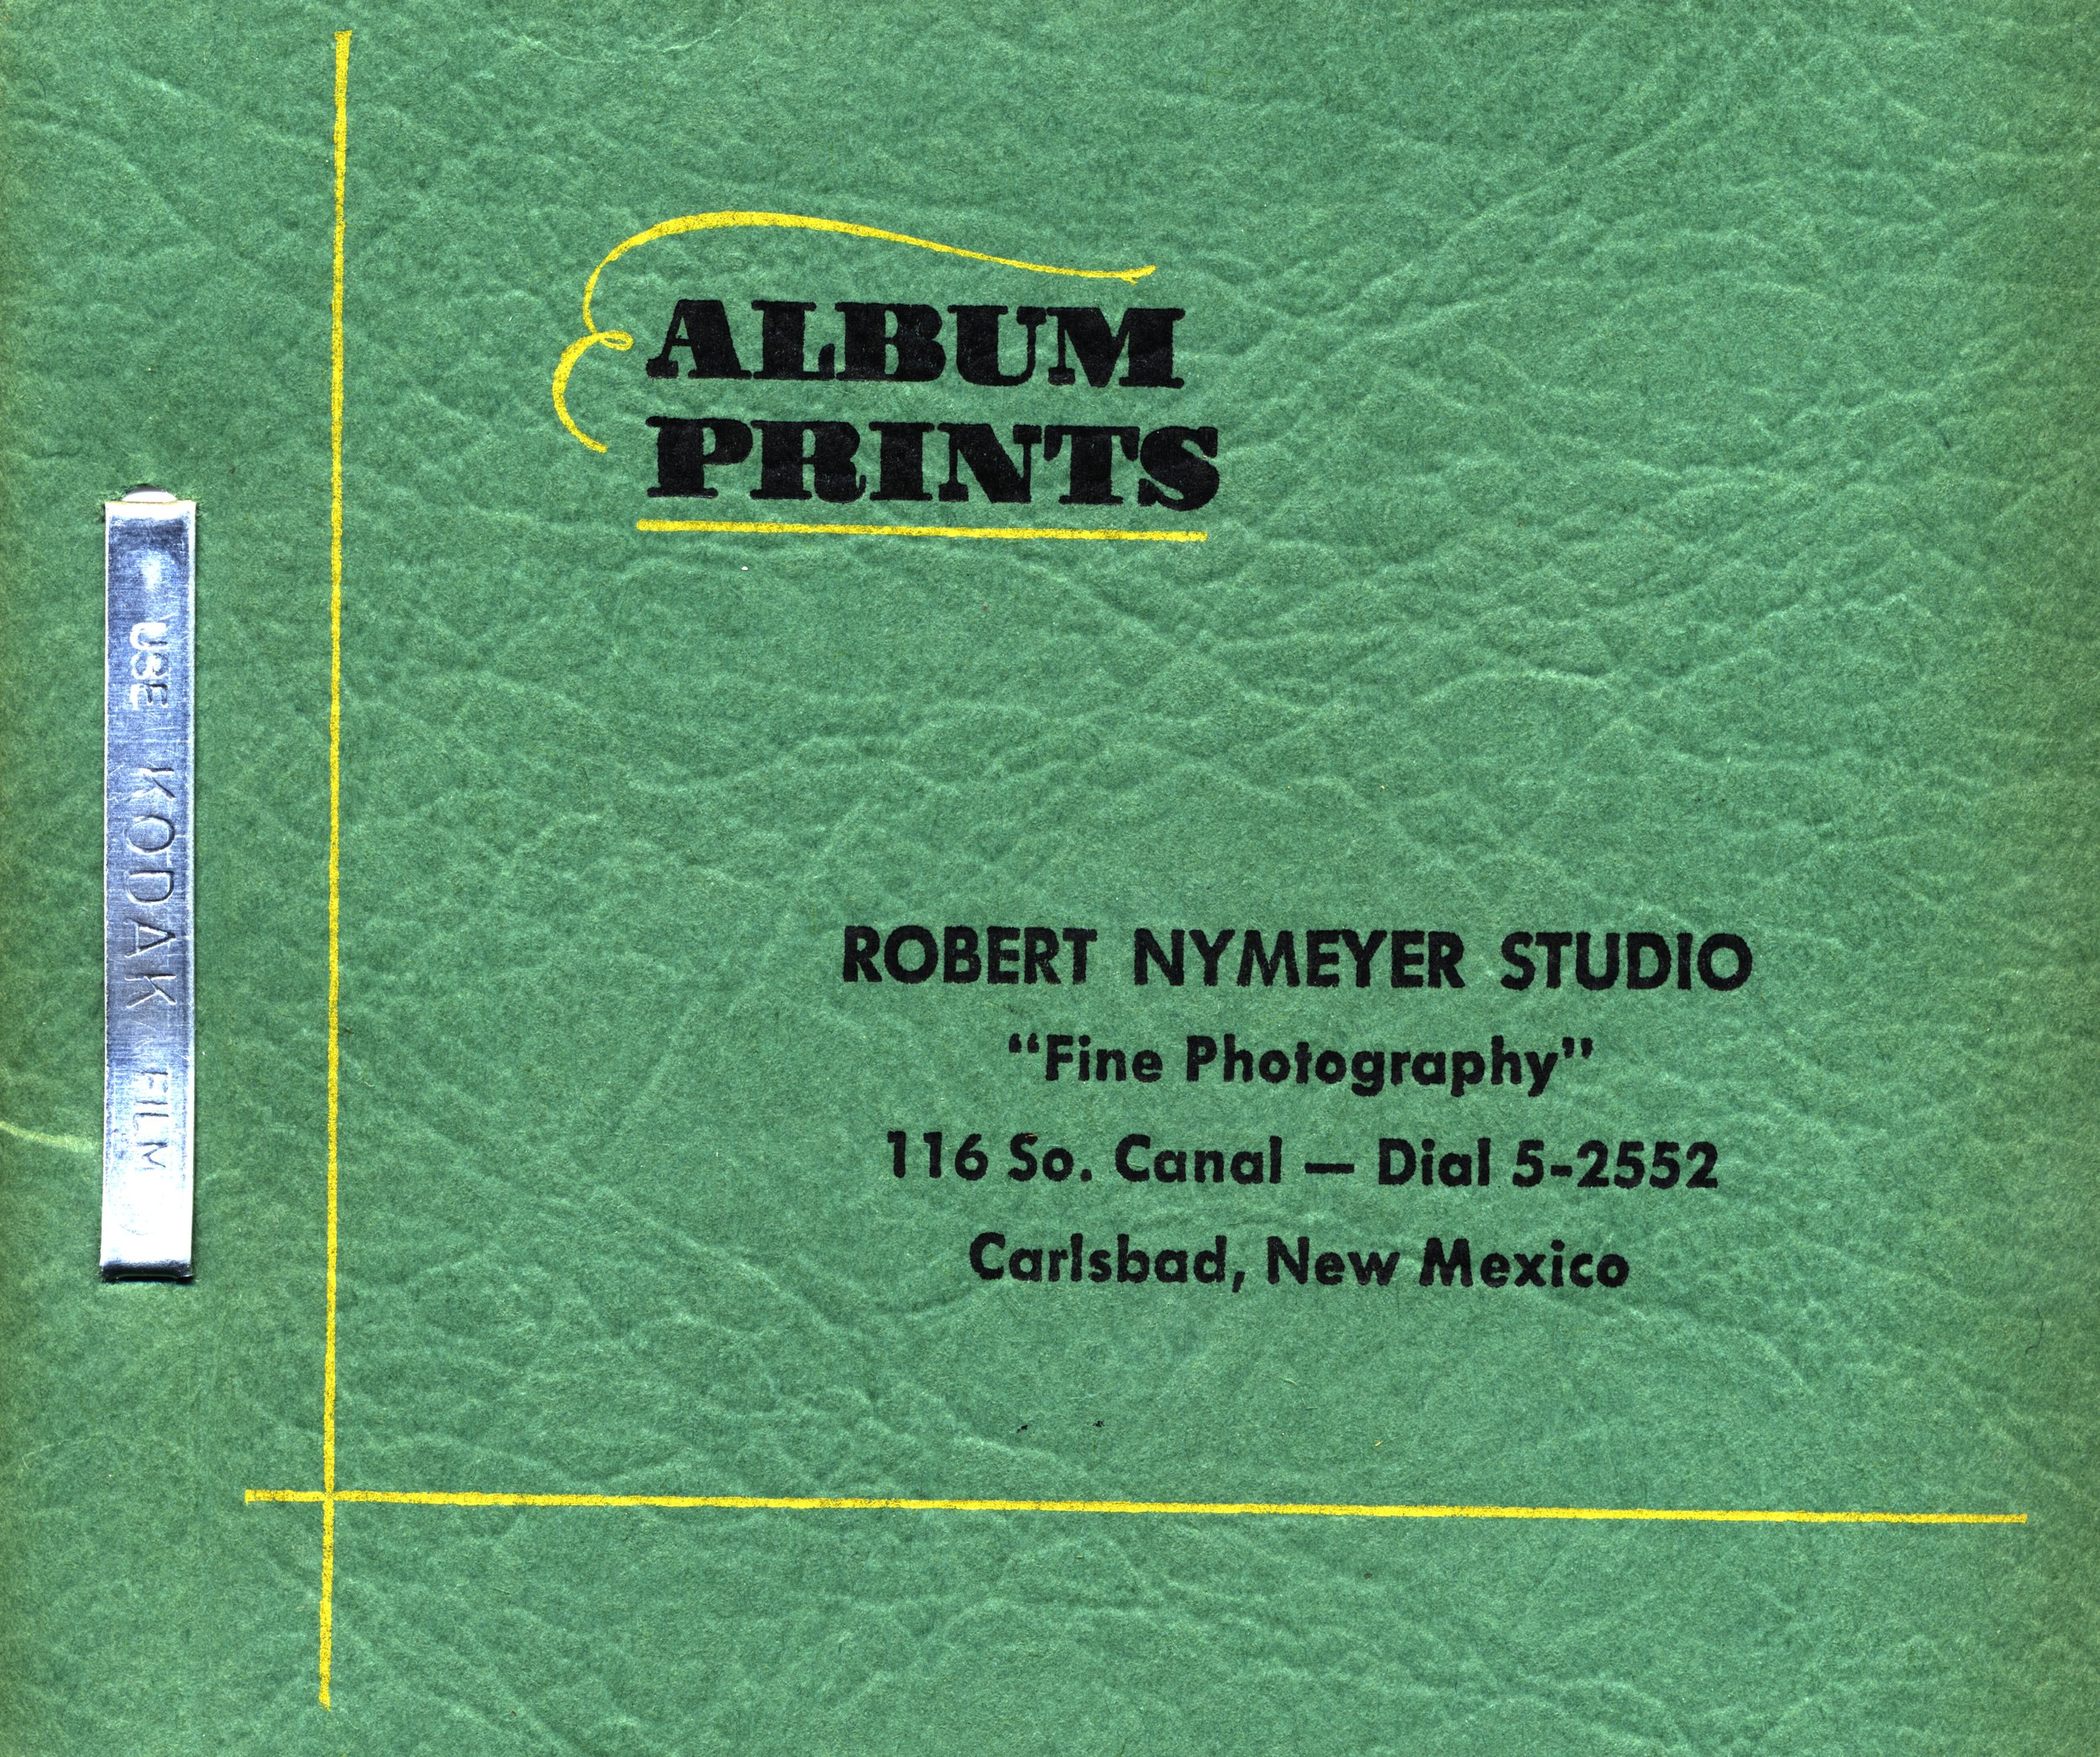 Robert Nymeyer Studio, Carlsbad NM